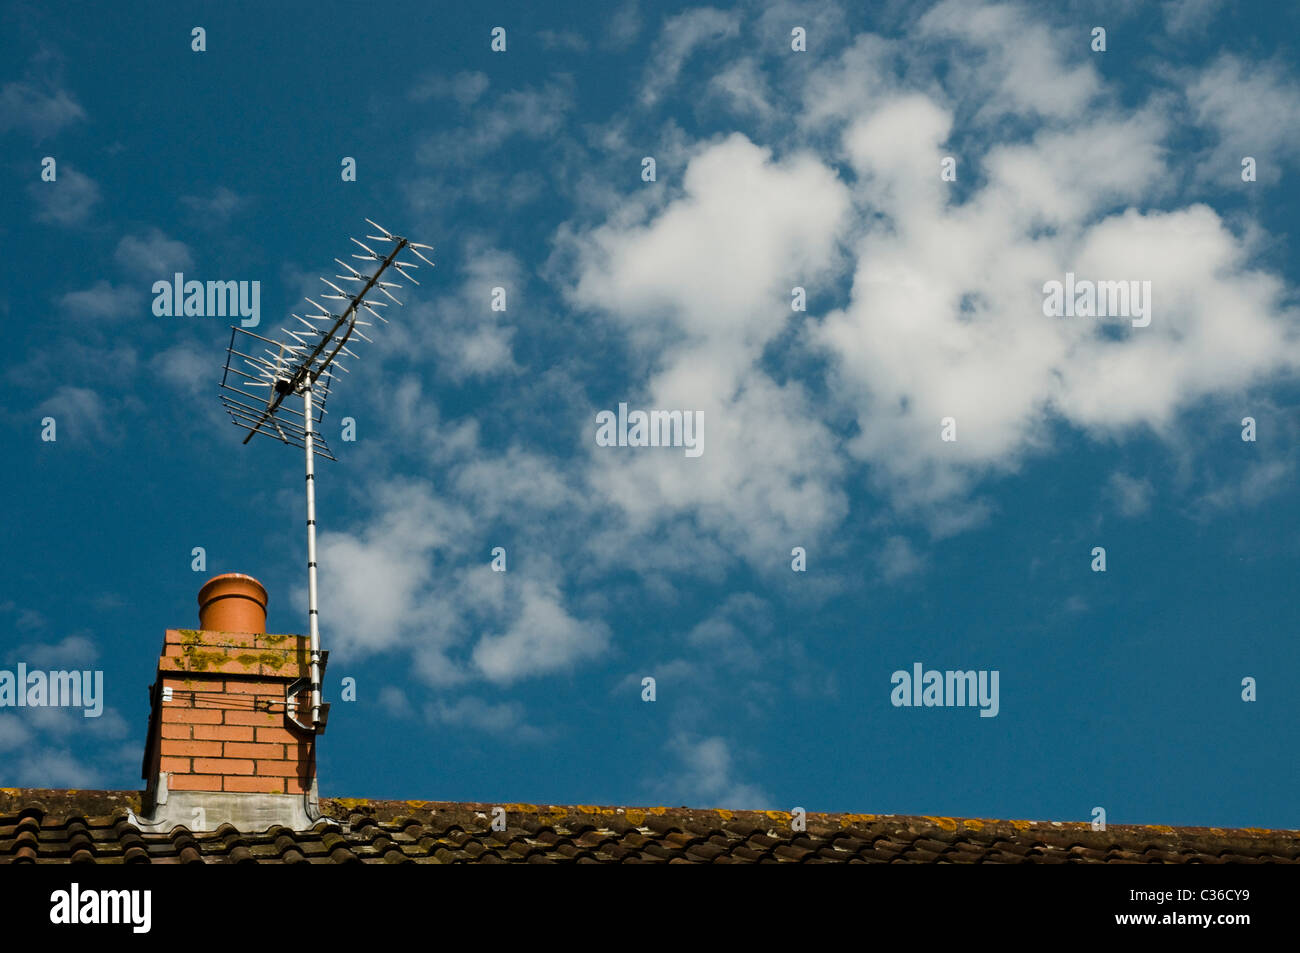 A UK television aerial on top of a house - Stock Image